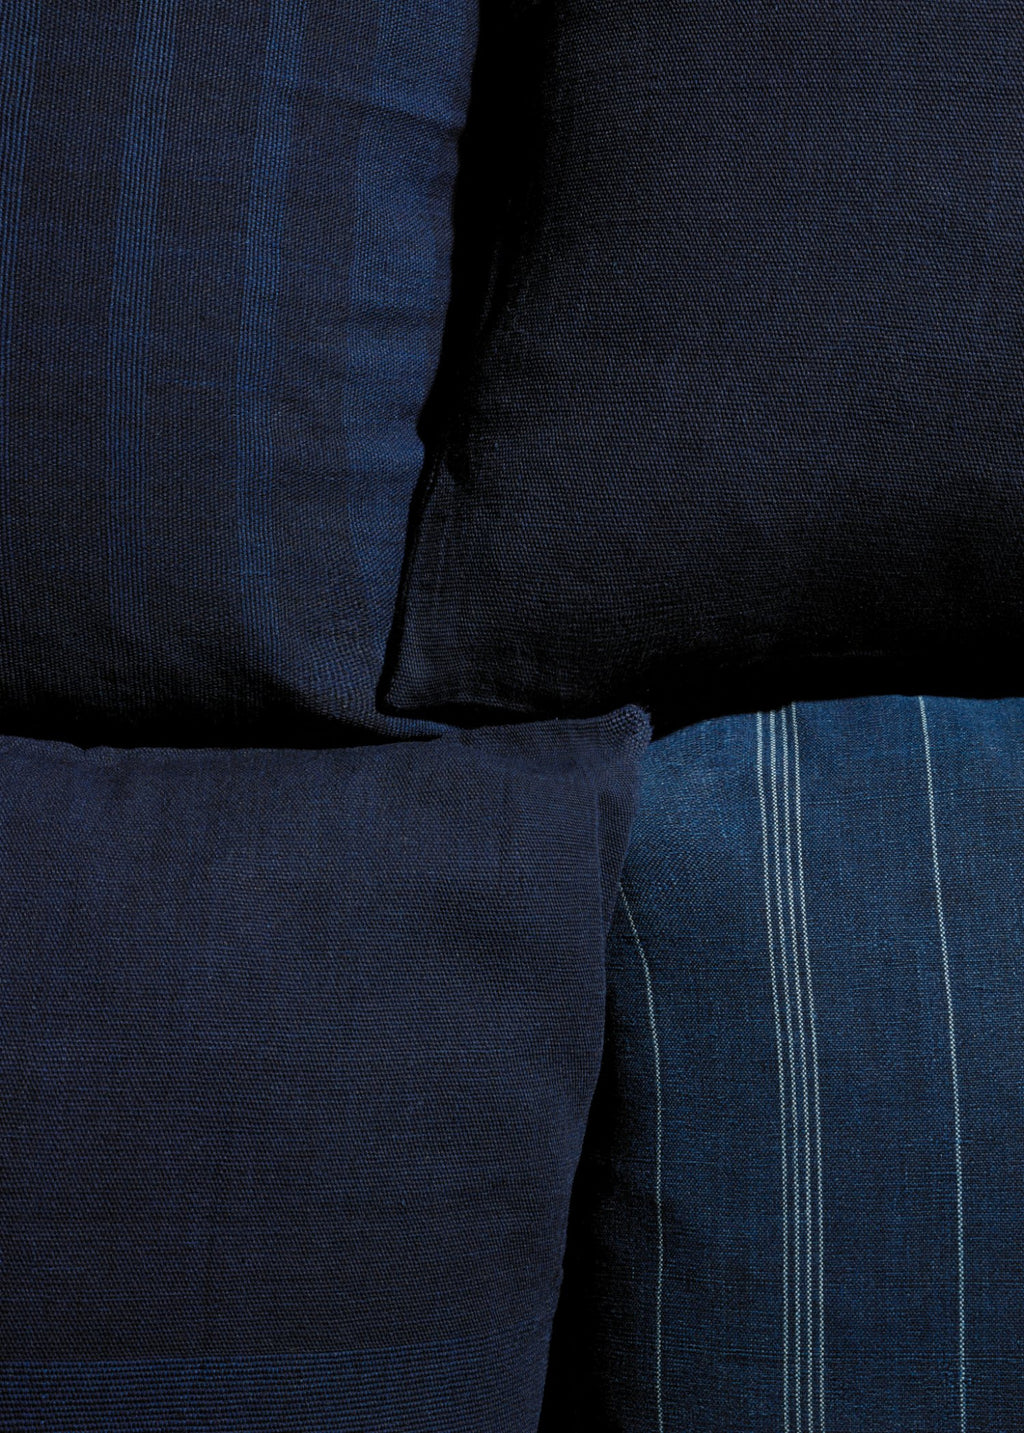 Indigo Pillow Band - YUYU Sustainable Home Goods